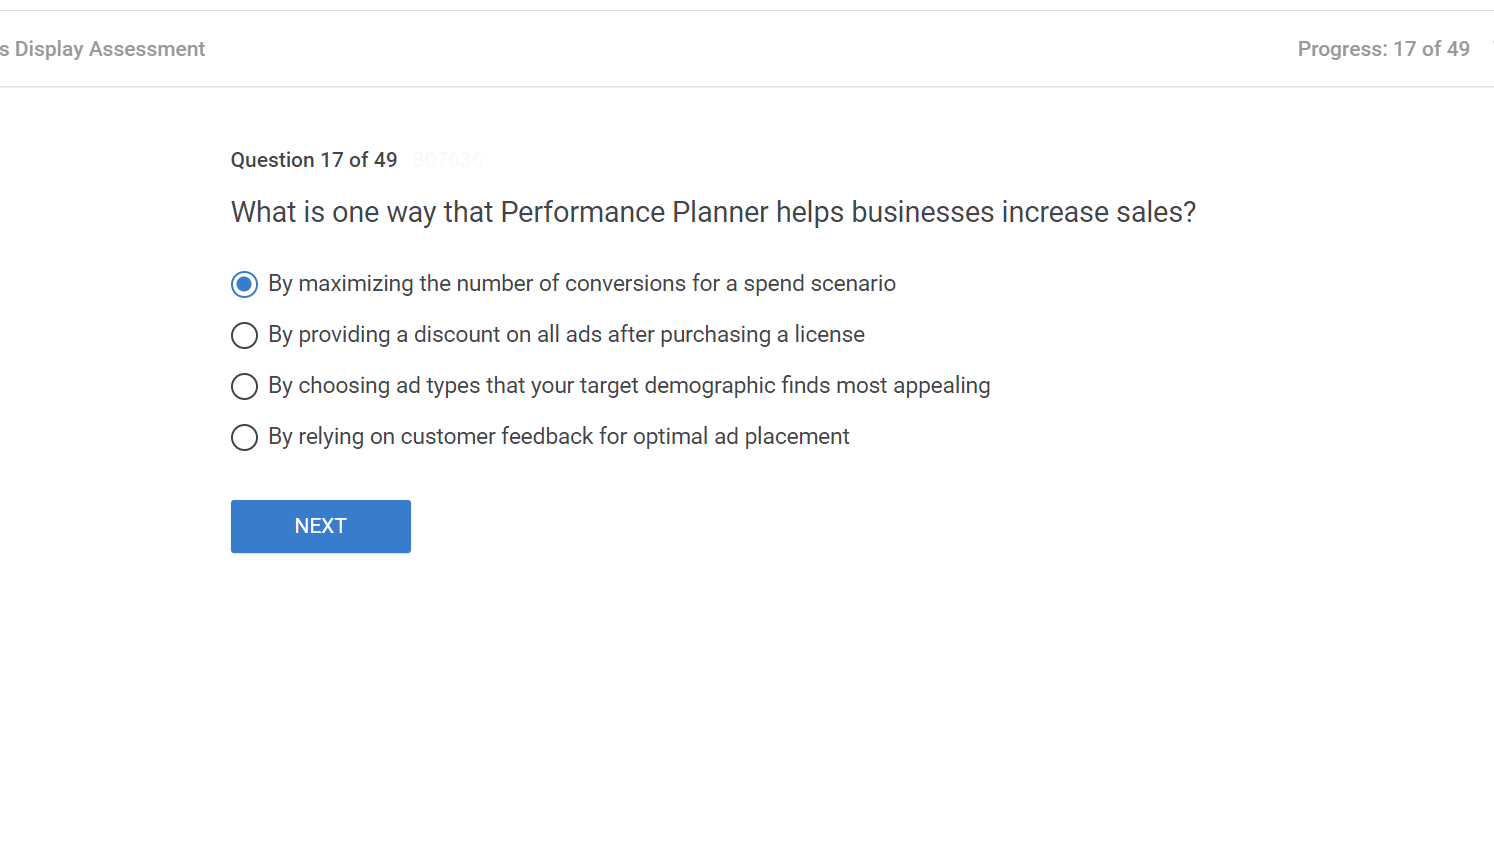 What is one way that Performance Planner helps businesses increase sales